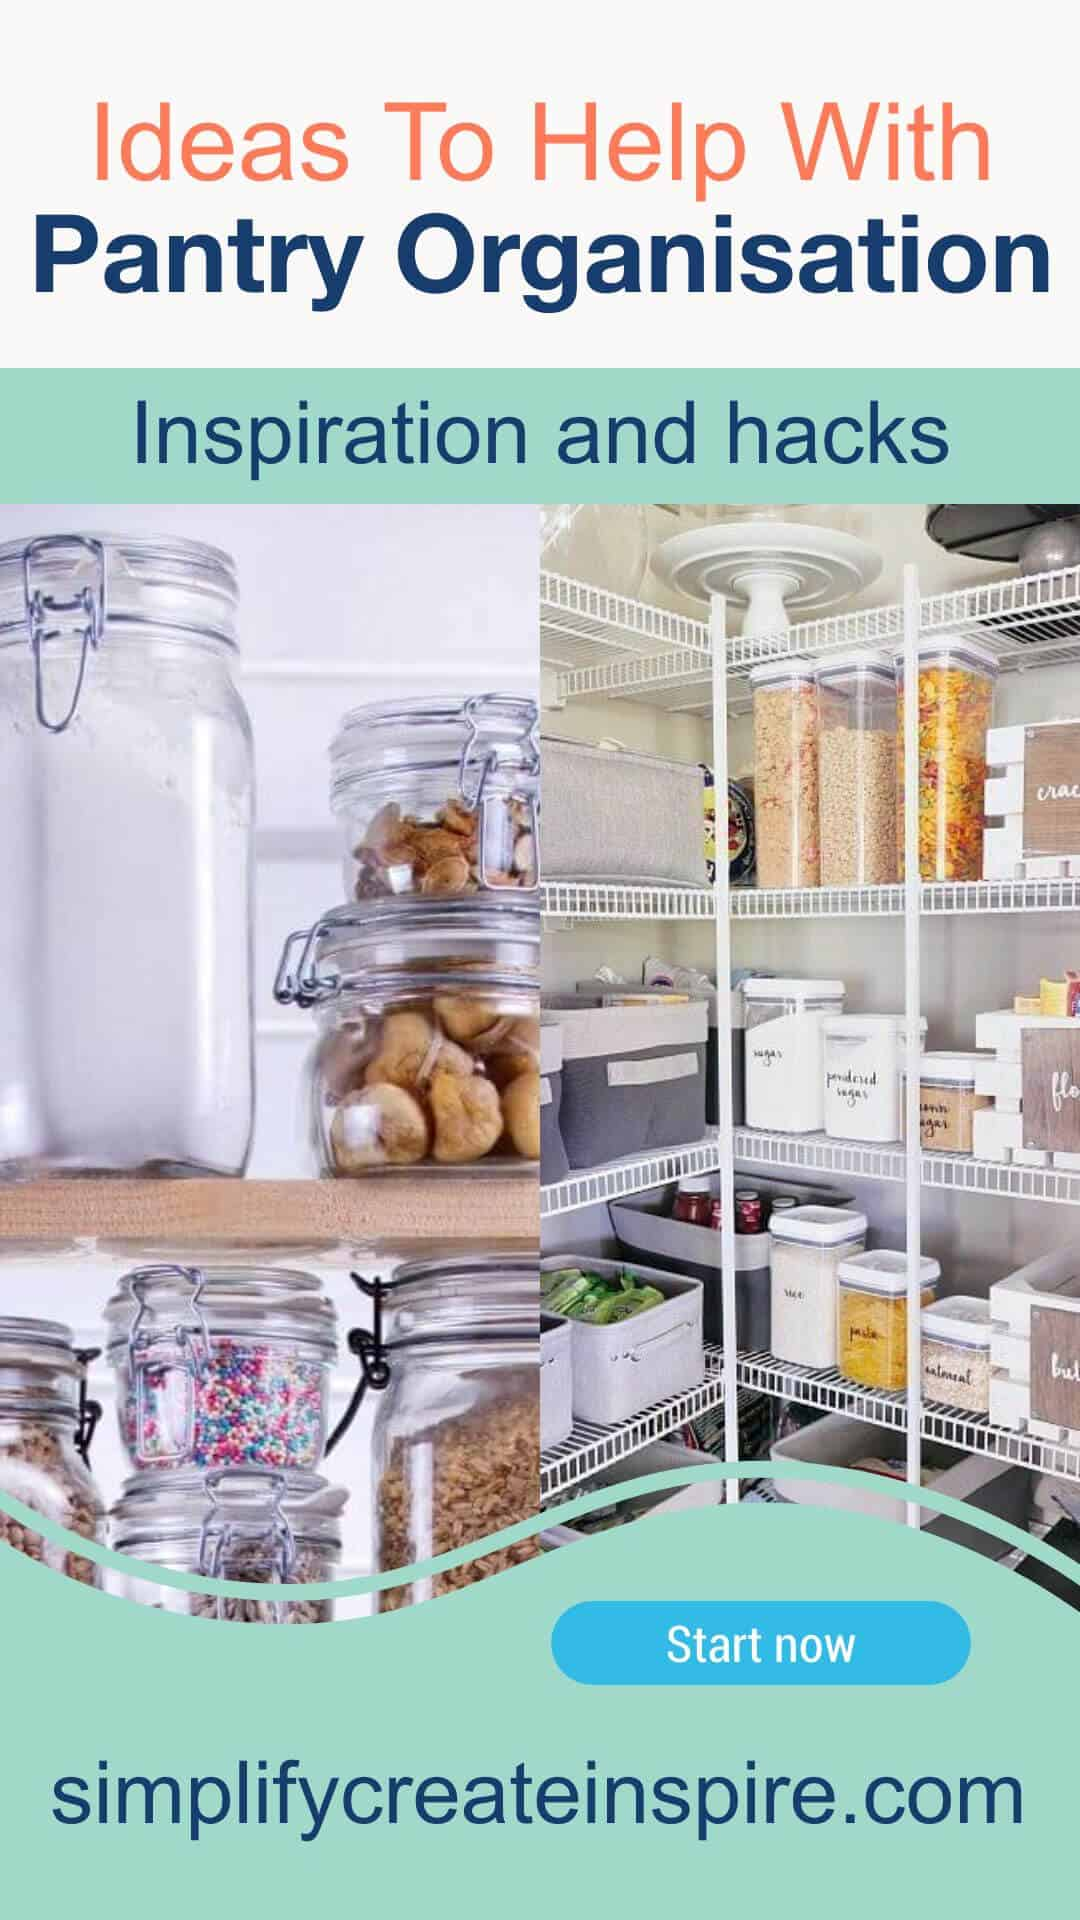 Pantry organisation ideas and hacks